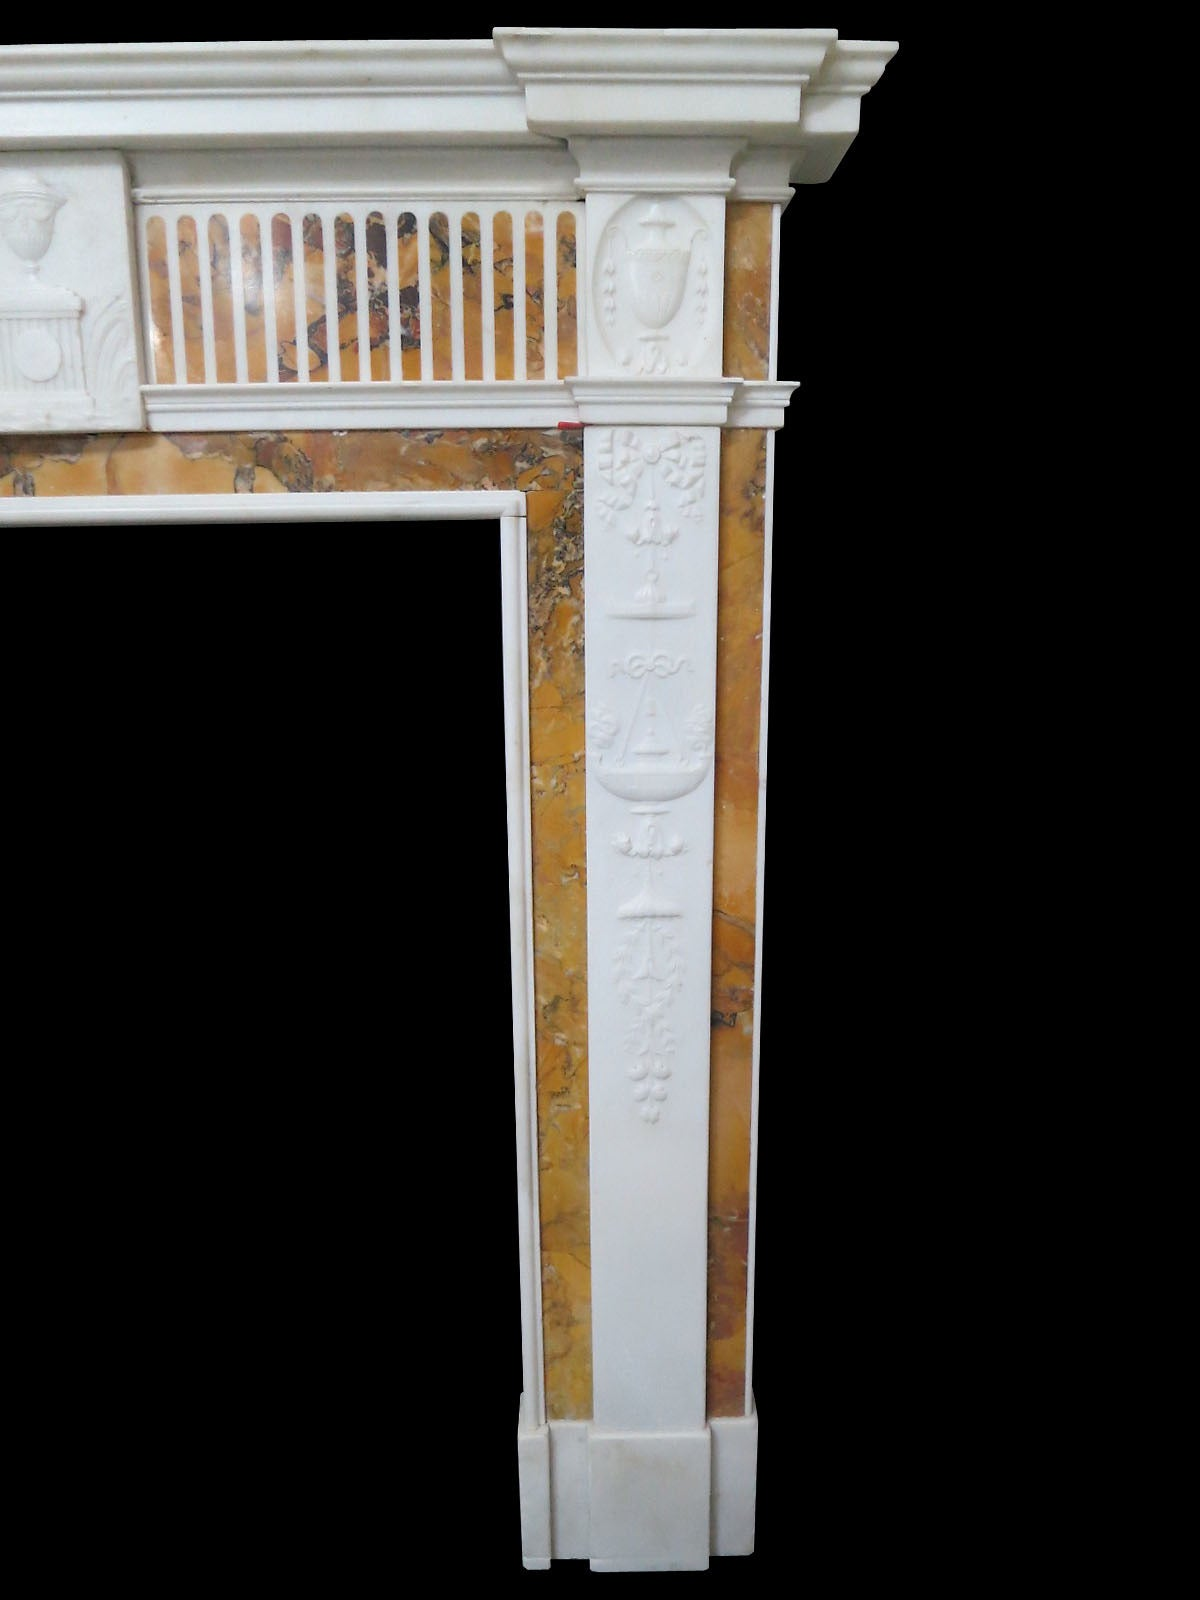 18th century statuary and convent sienna marble fireplace mantel